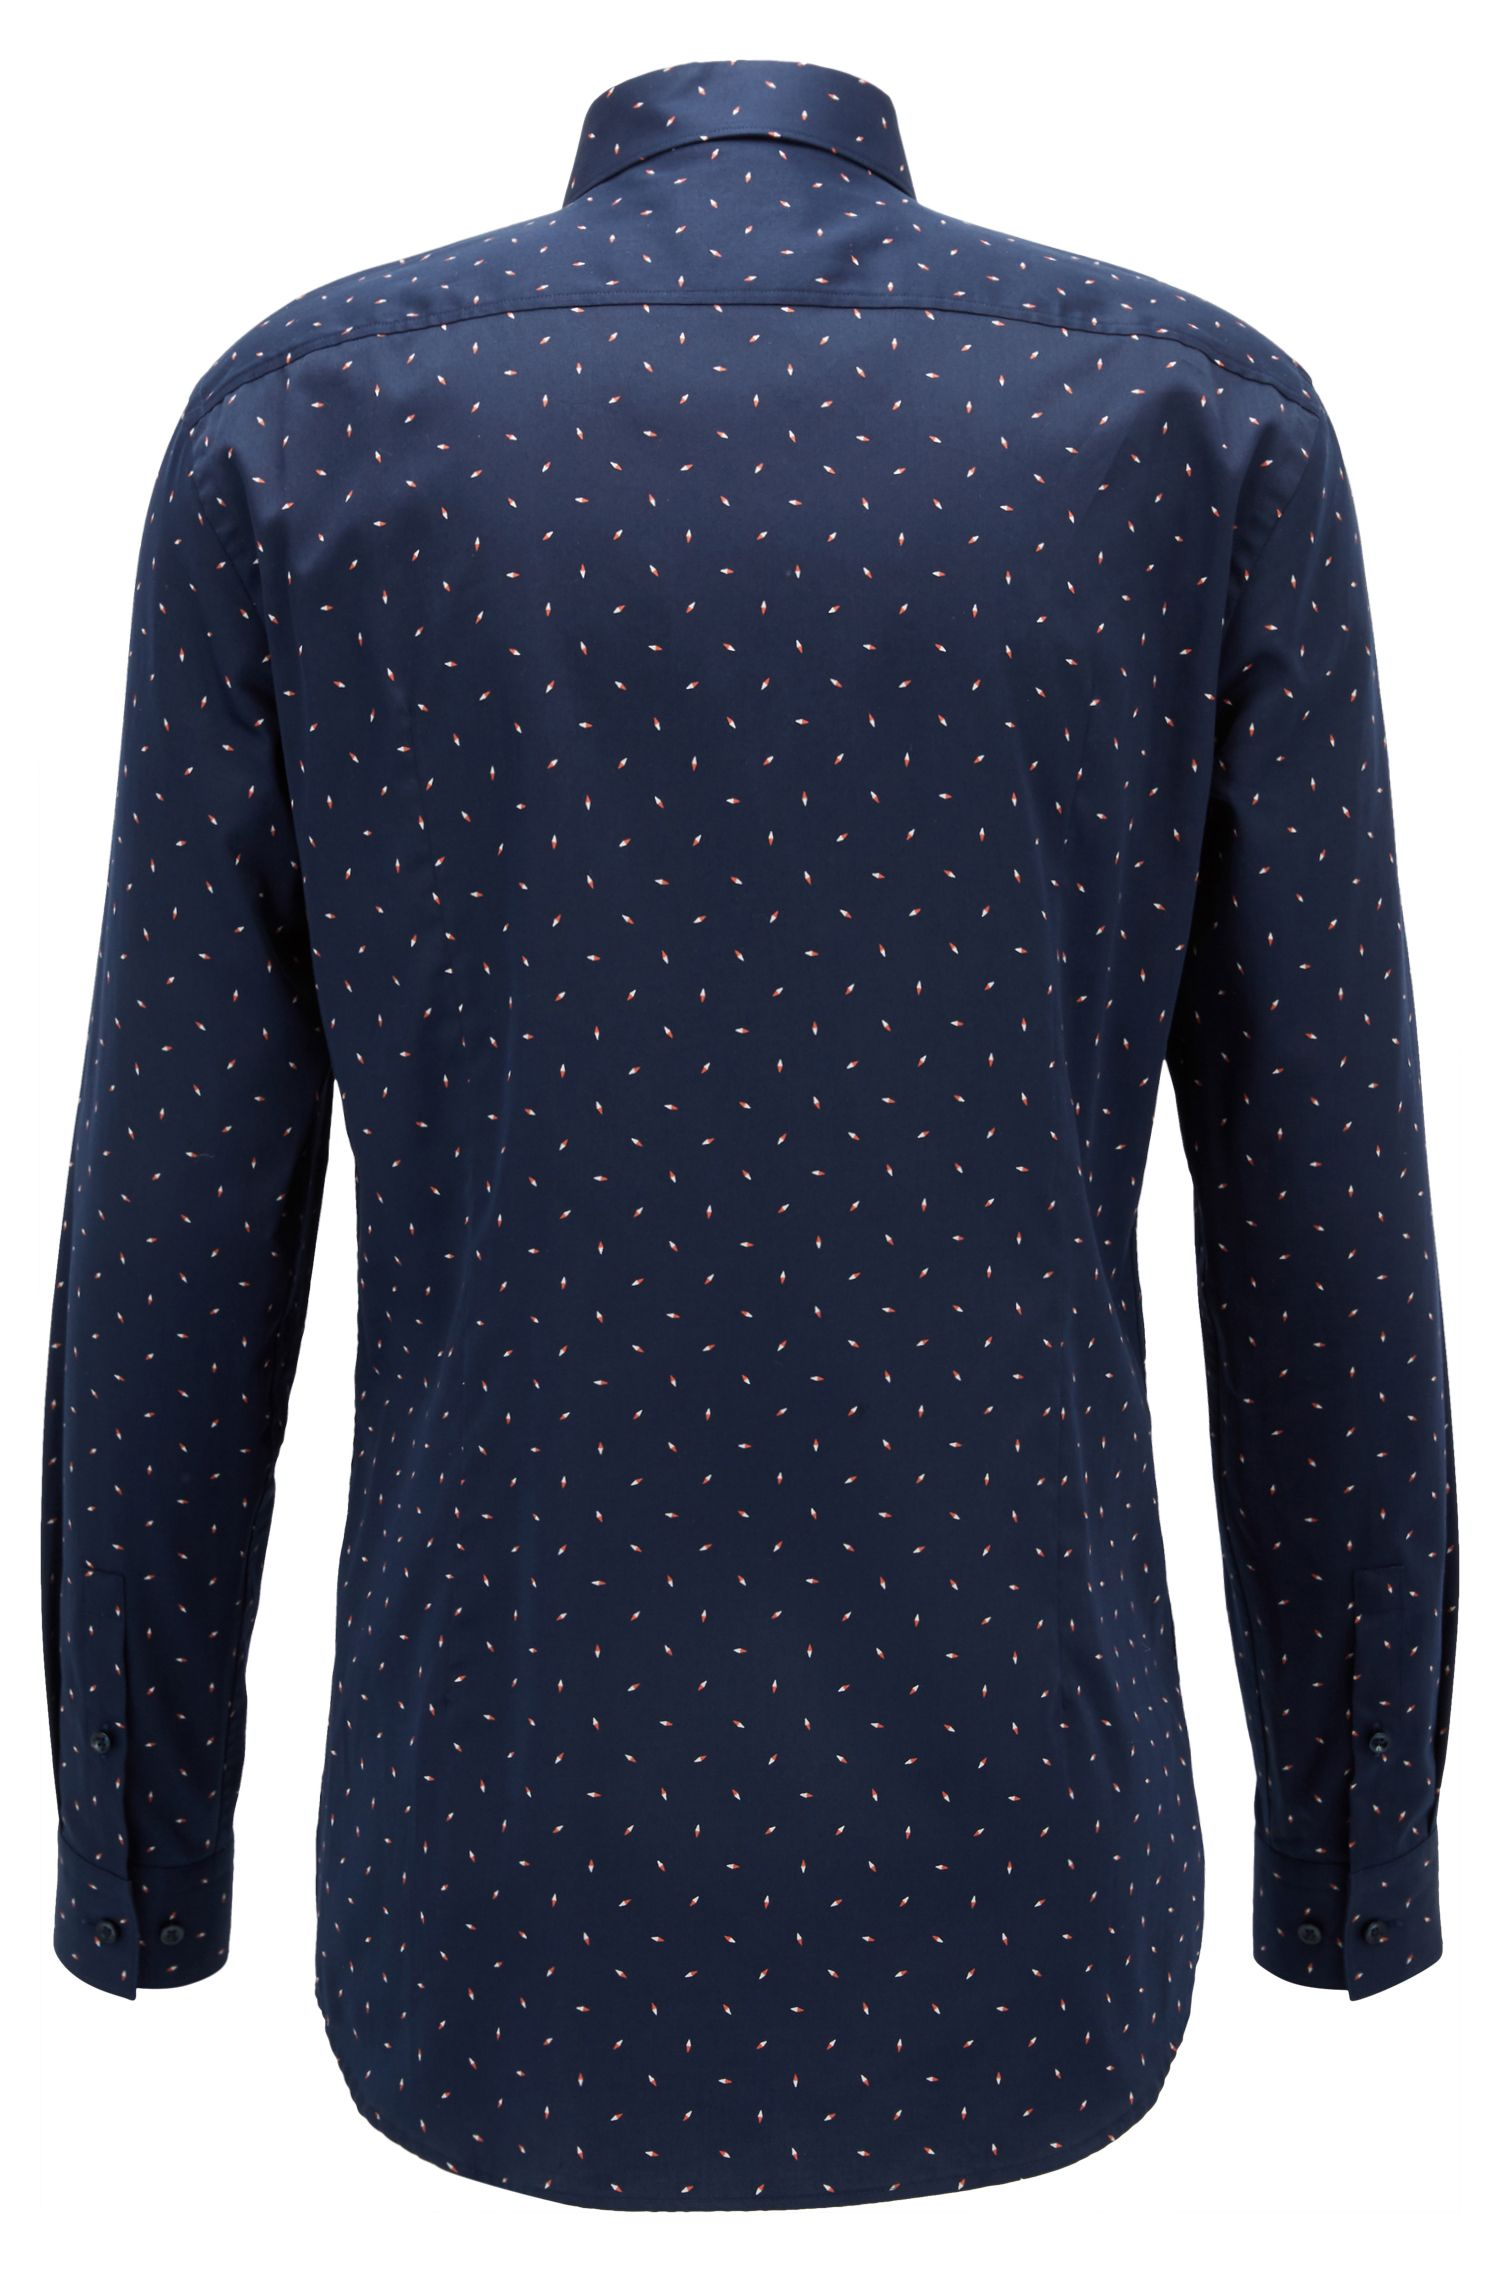 Patterned Cotton Dress Shirt, Slim Fit | Ismo, Dark Blue